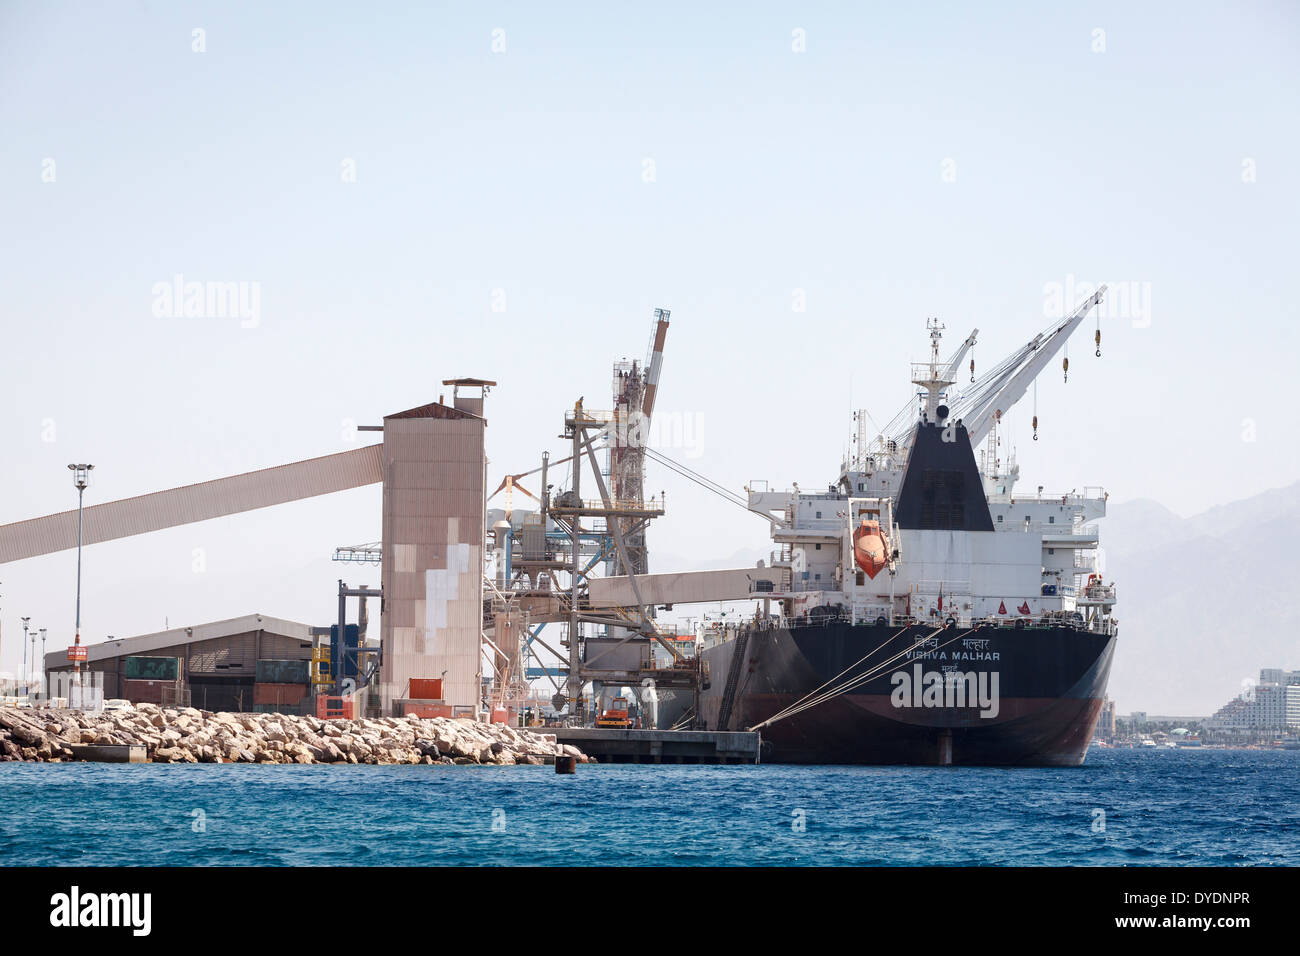 Cargo ship at the commercial port, Eilat, Israel. - Stock Image